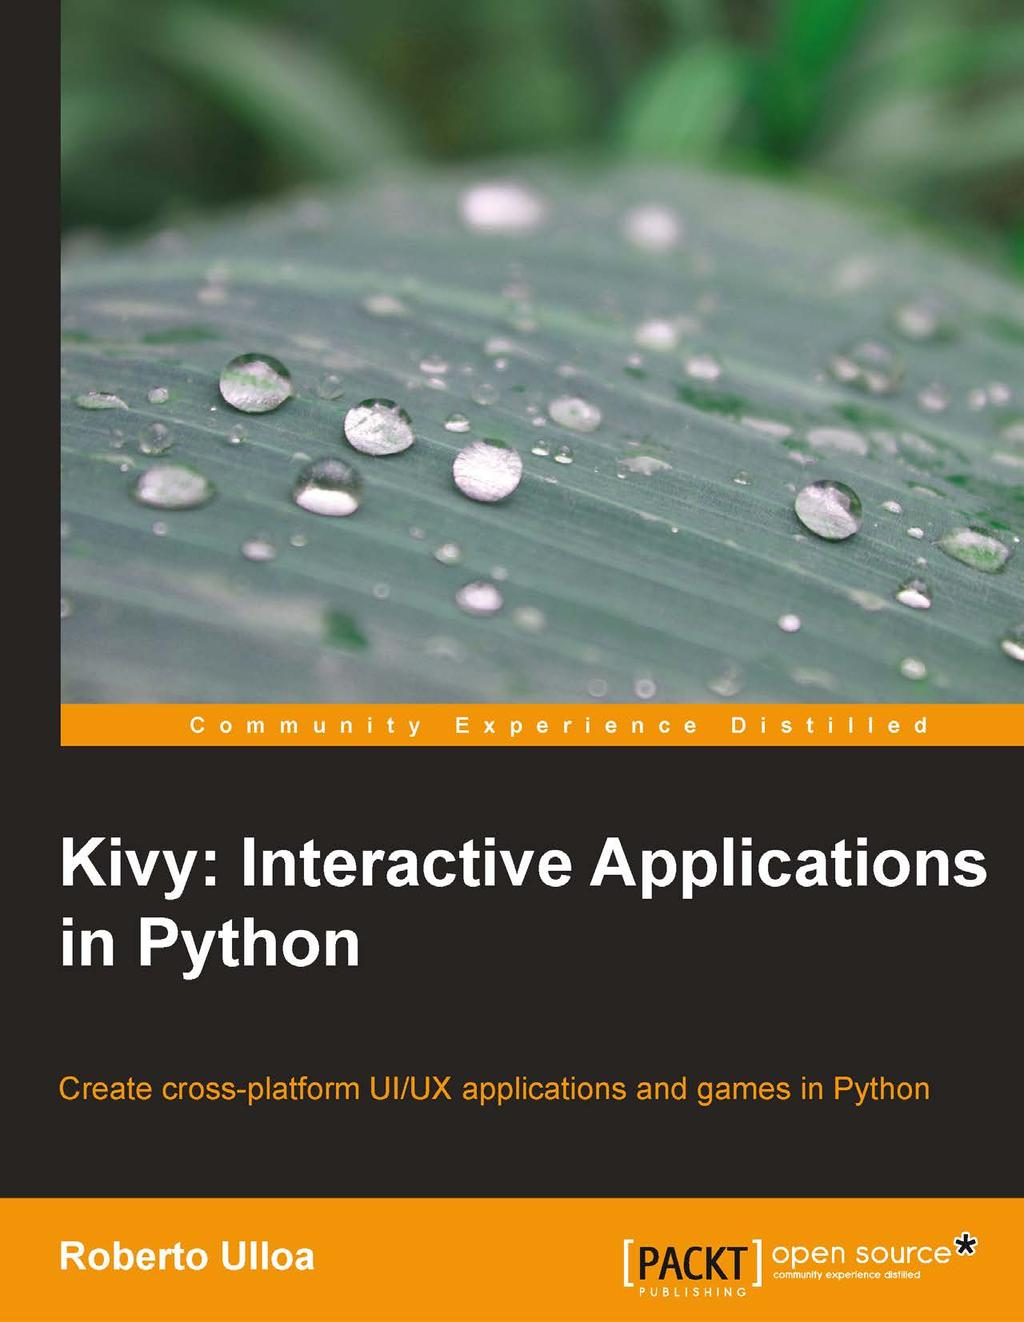 Kivy: Interactive Applications in Python - PDF